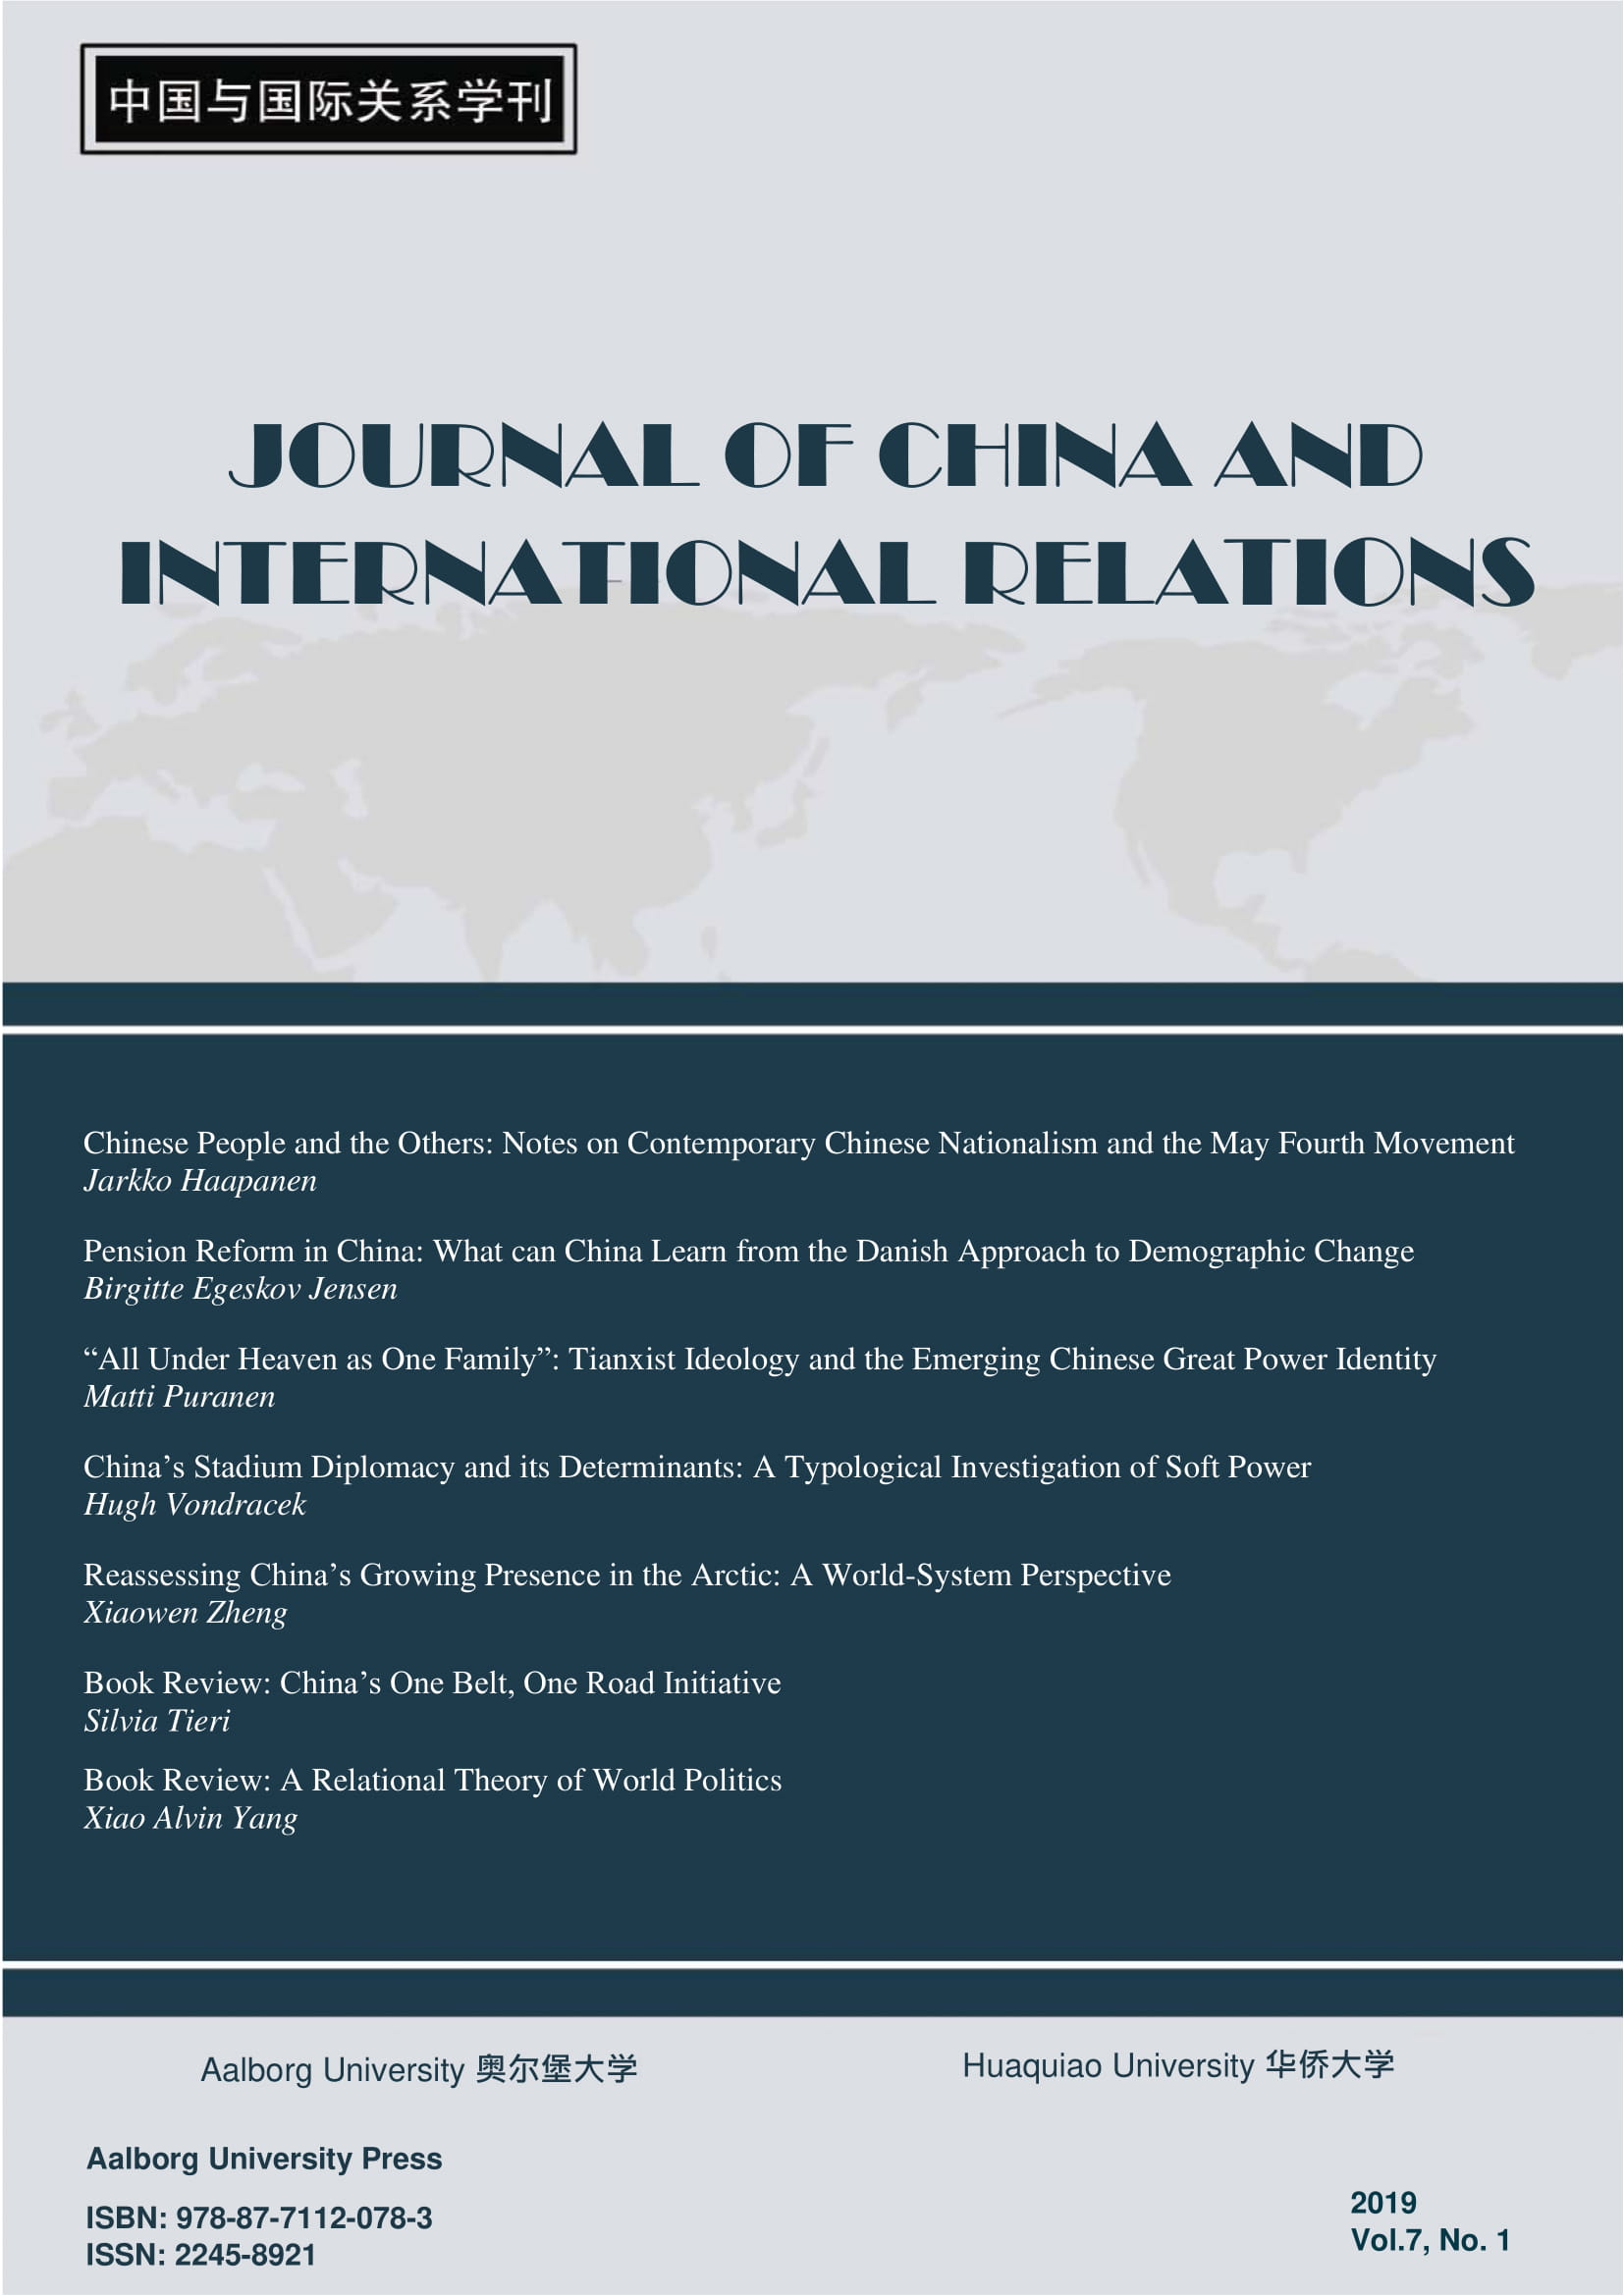 View Vol. 7 No. 1 (2019): Journal of China and International Relations